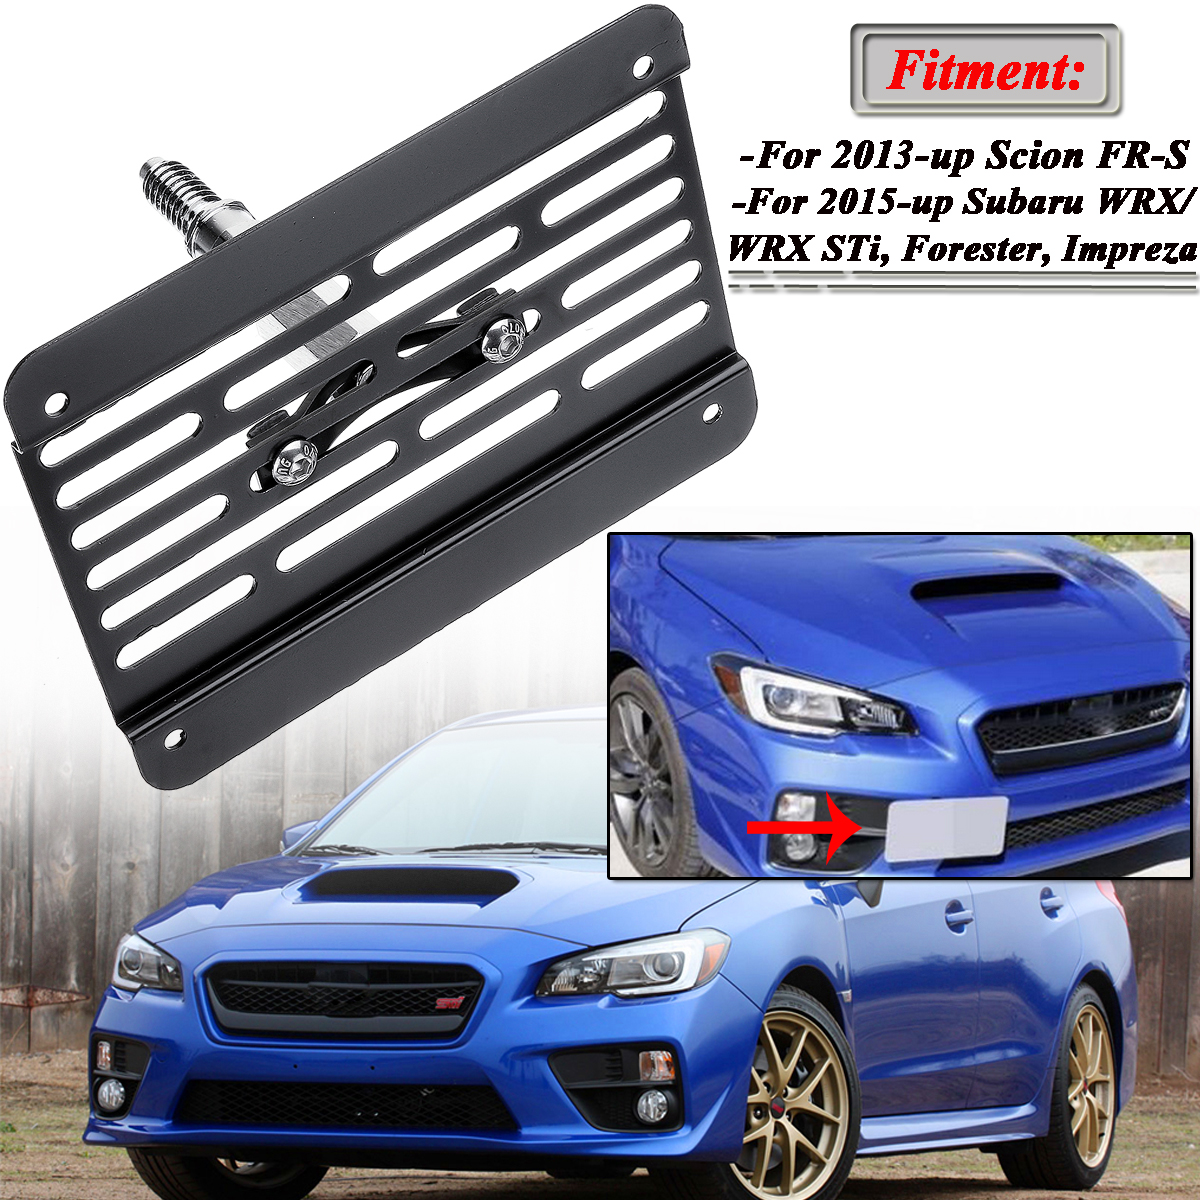 New Front Bumper Tow Hook License Plate Frame Holder Relocator Mounting Bracket For Subaru WRX STI 2015-up Scion FR-S 2013-up